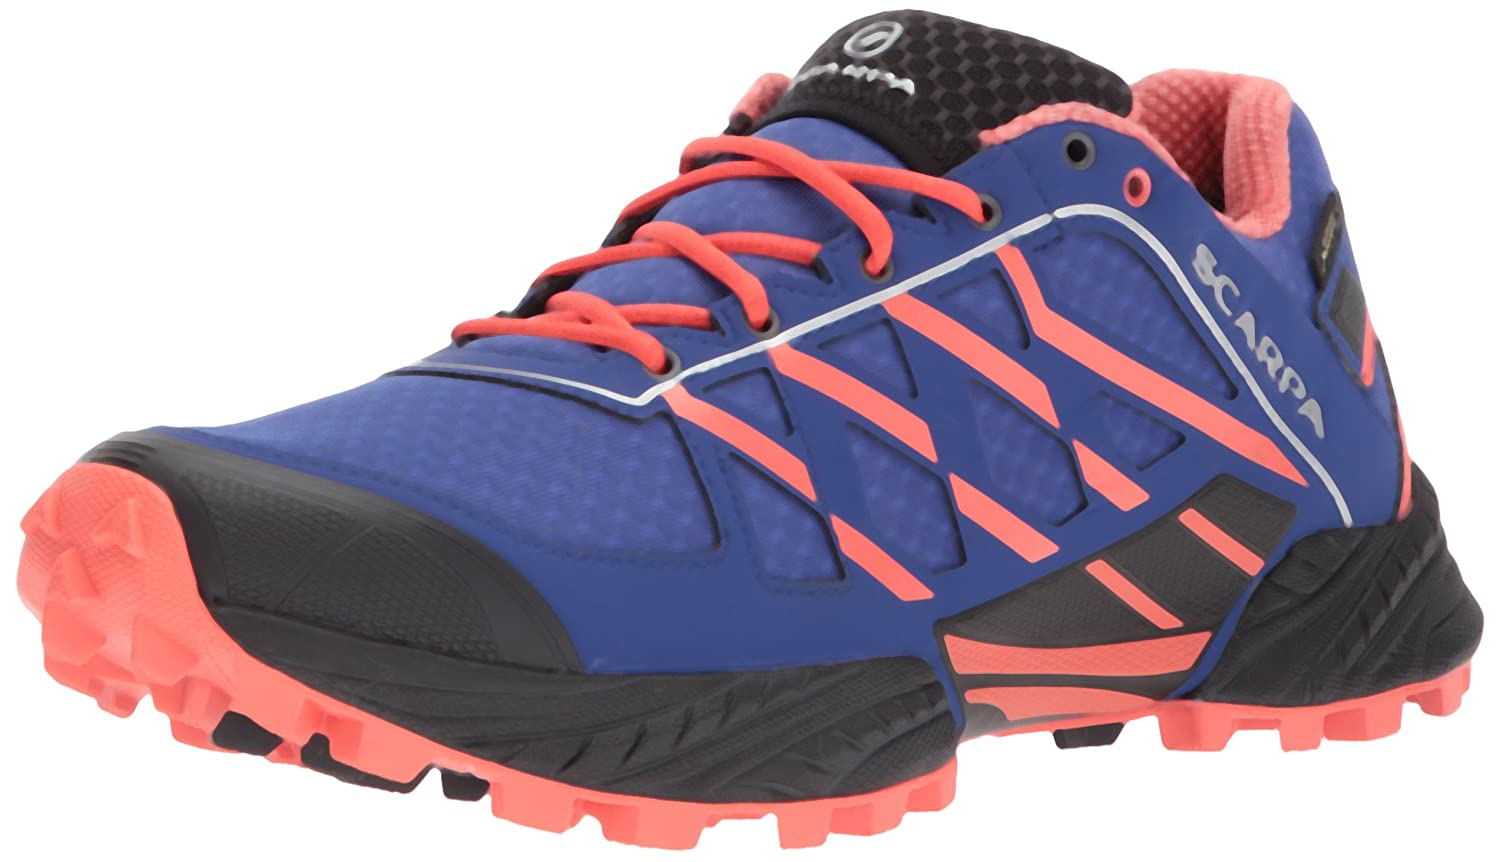 SCARPA Women's Neutron GTX Trail Running Shoe Backpacking Boot B01MR93QUH 40.5 EU/8 2/3 M US|Clematis/Coral Red